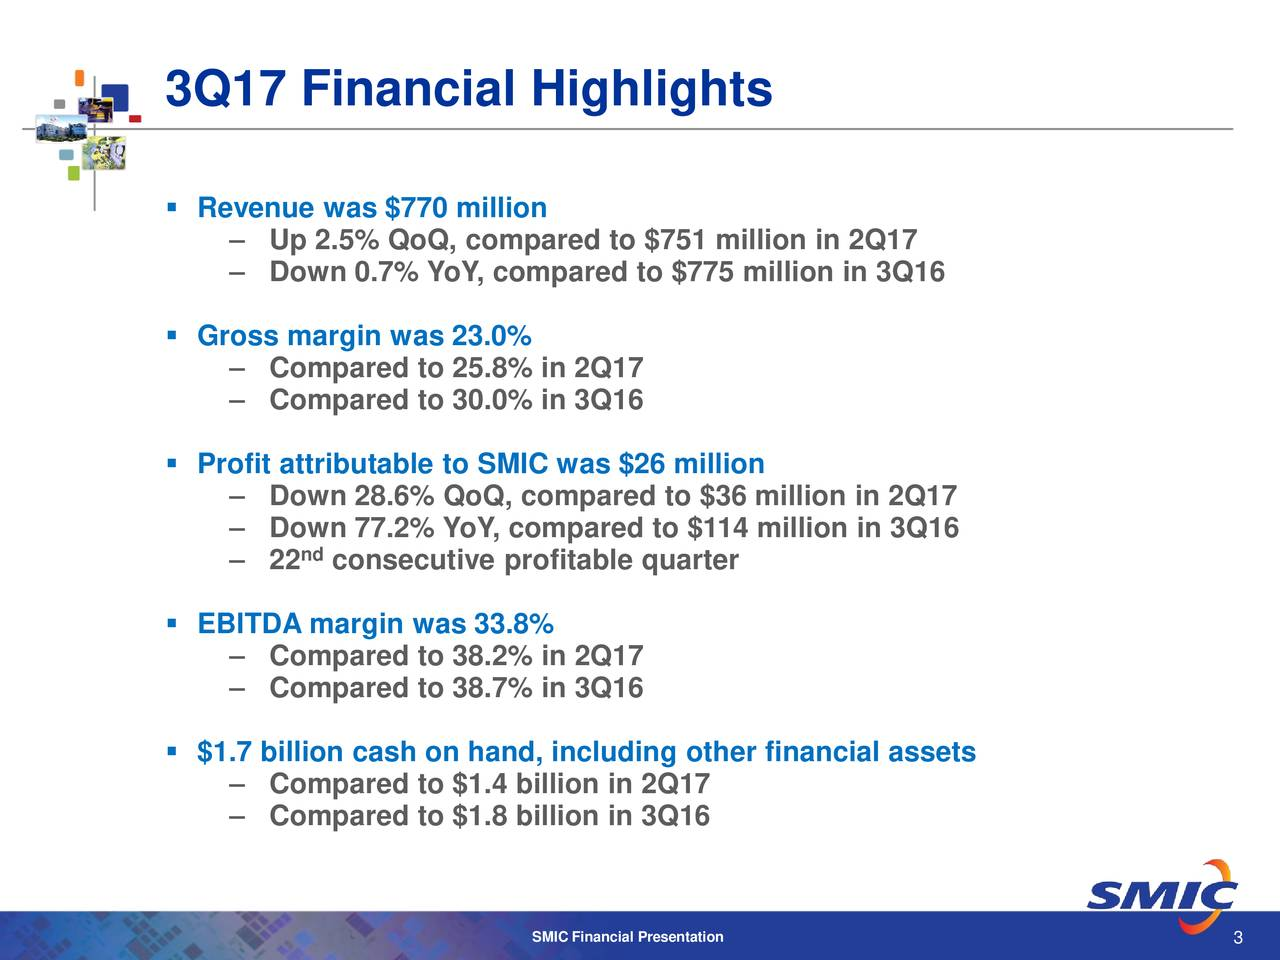  Revenue was $770 million – Up 2.5% QoQ, compared to $751 million in 2Q17 – Down 0.7% YoY, compared to $775 million in 3Q16  Gross margin was 23.0% – Compared to 25.8% in 2Q17 – Compared to 30.0% in 3Q16  Profit attributable to SMIC was $26 million – Down 28.6% QoQ, compared to $36 million in 2Q17 – Down 77.2% YoY, compared to $114 million in 3Q16 – 22 ndconsecutive profitable quarter  EBITDA margin was 33.8% – Compared to 38.2% in 2Q17 – Compared to 38.7% in 3Q16  $1.7 billion cash on hand, including other financial assets – Compared to $1.4 billion in 2Q17 – Compared to $1.8 billion in 3Q16 SMIC Financial Presentation 3